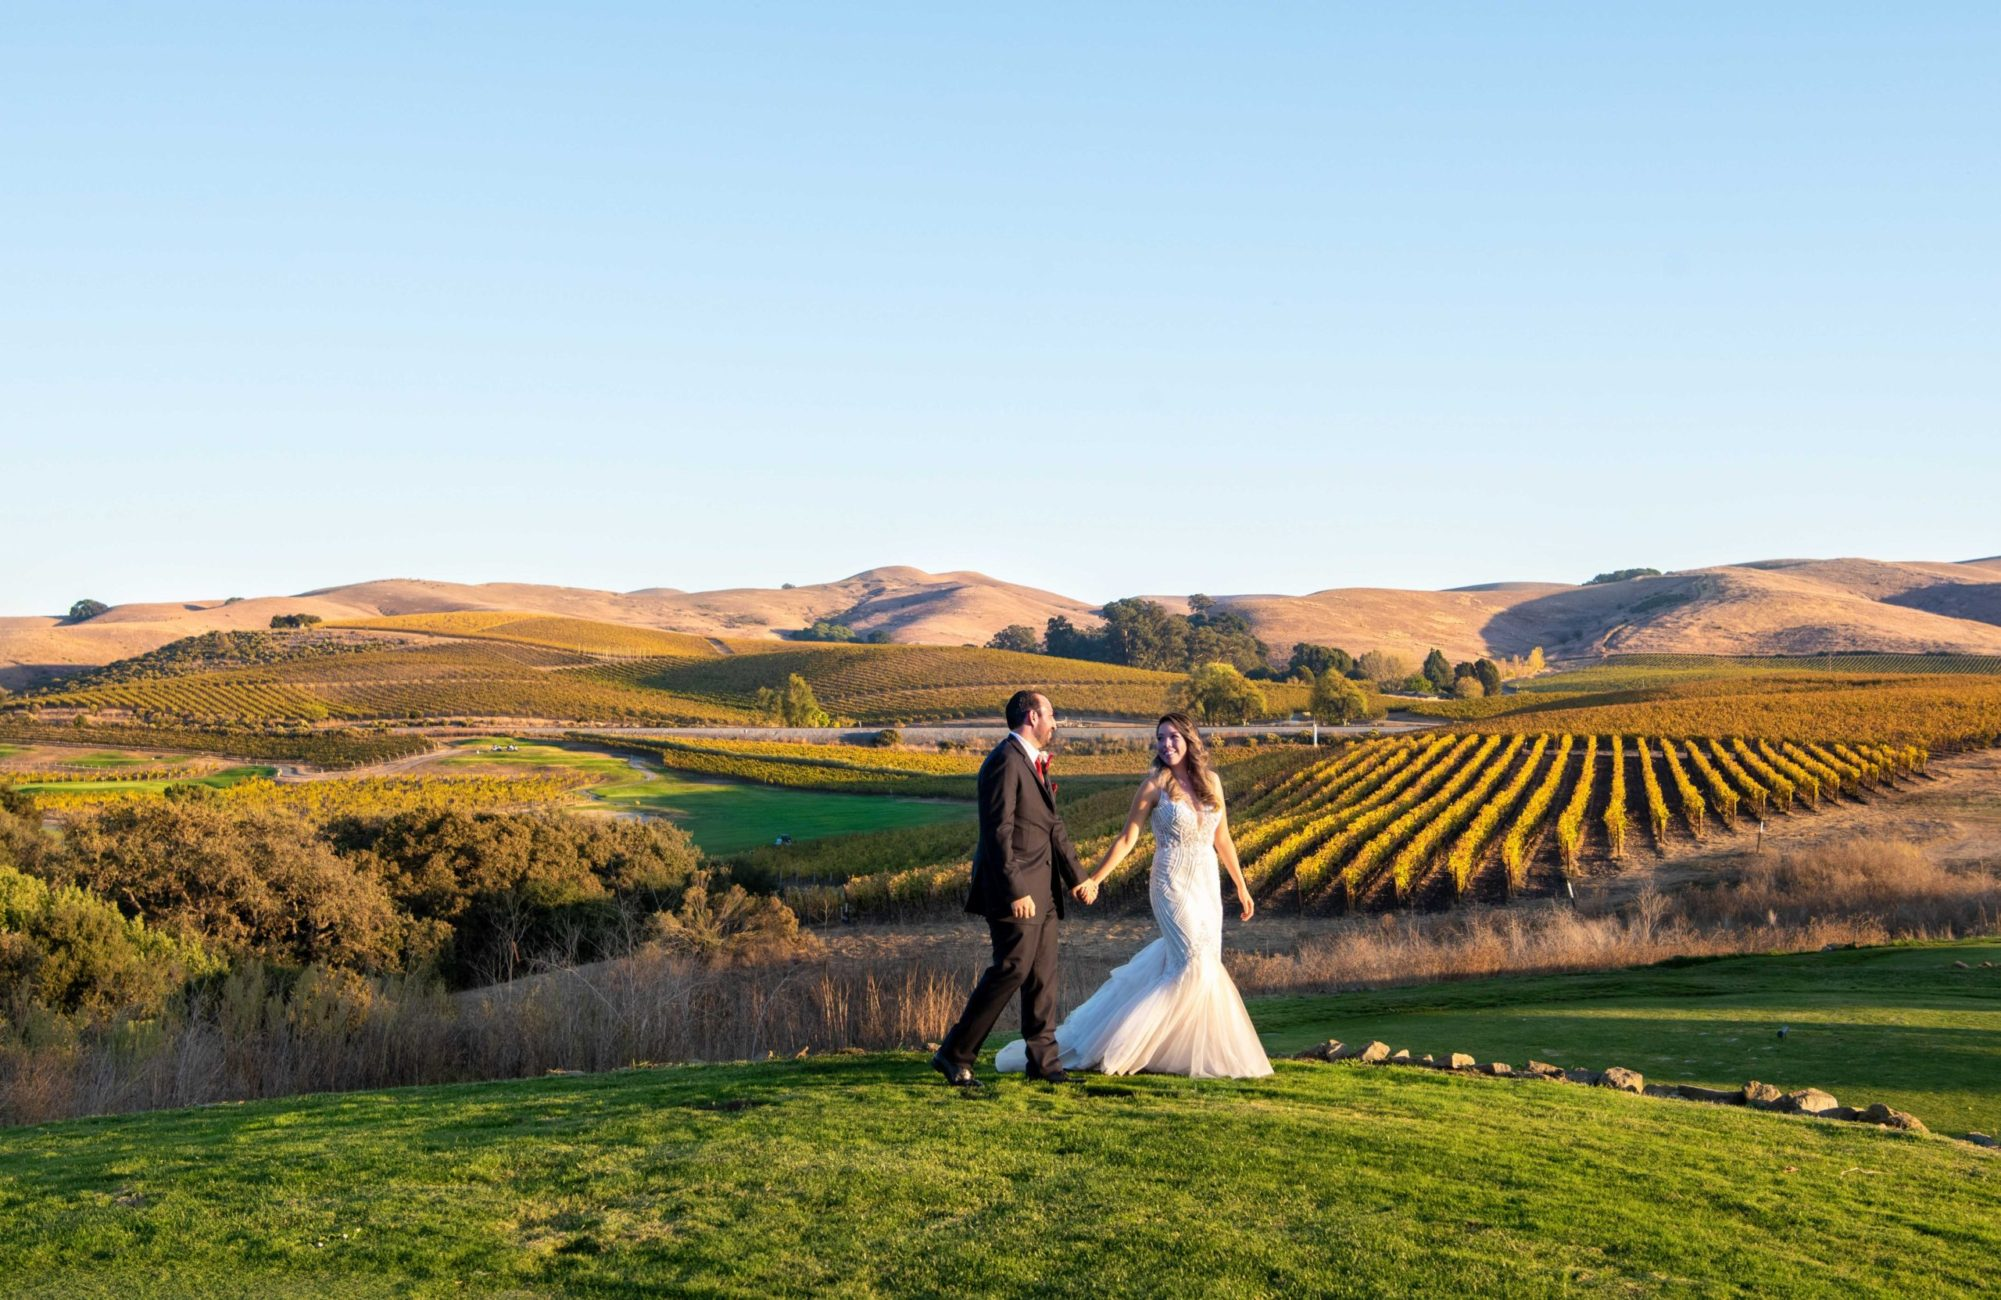 Elope in wine country